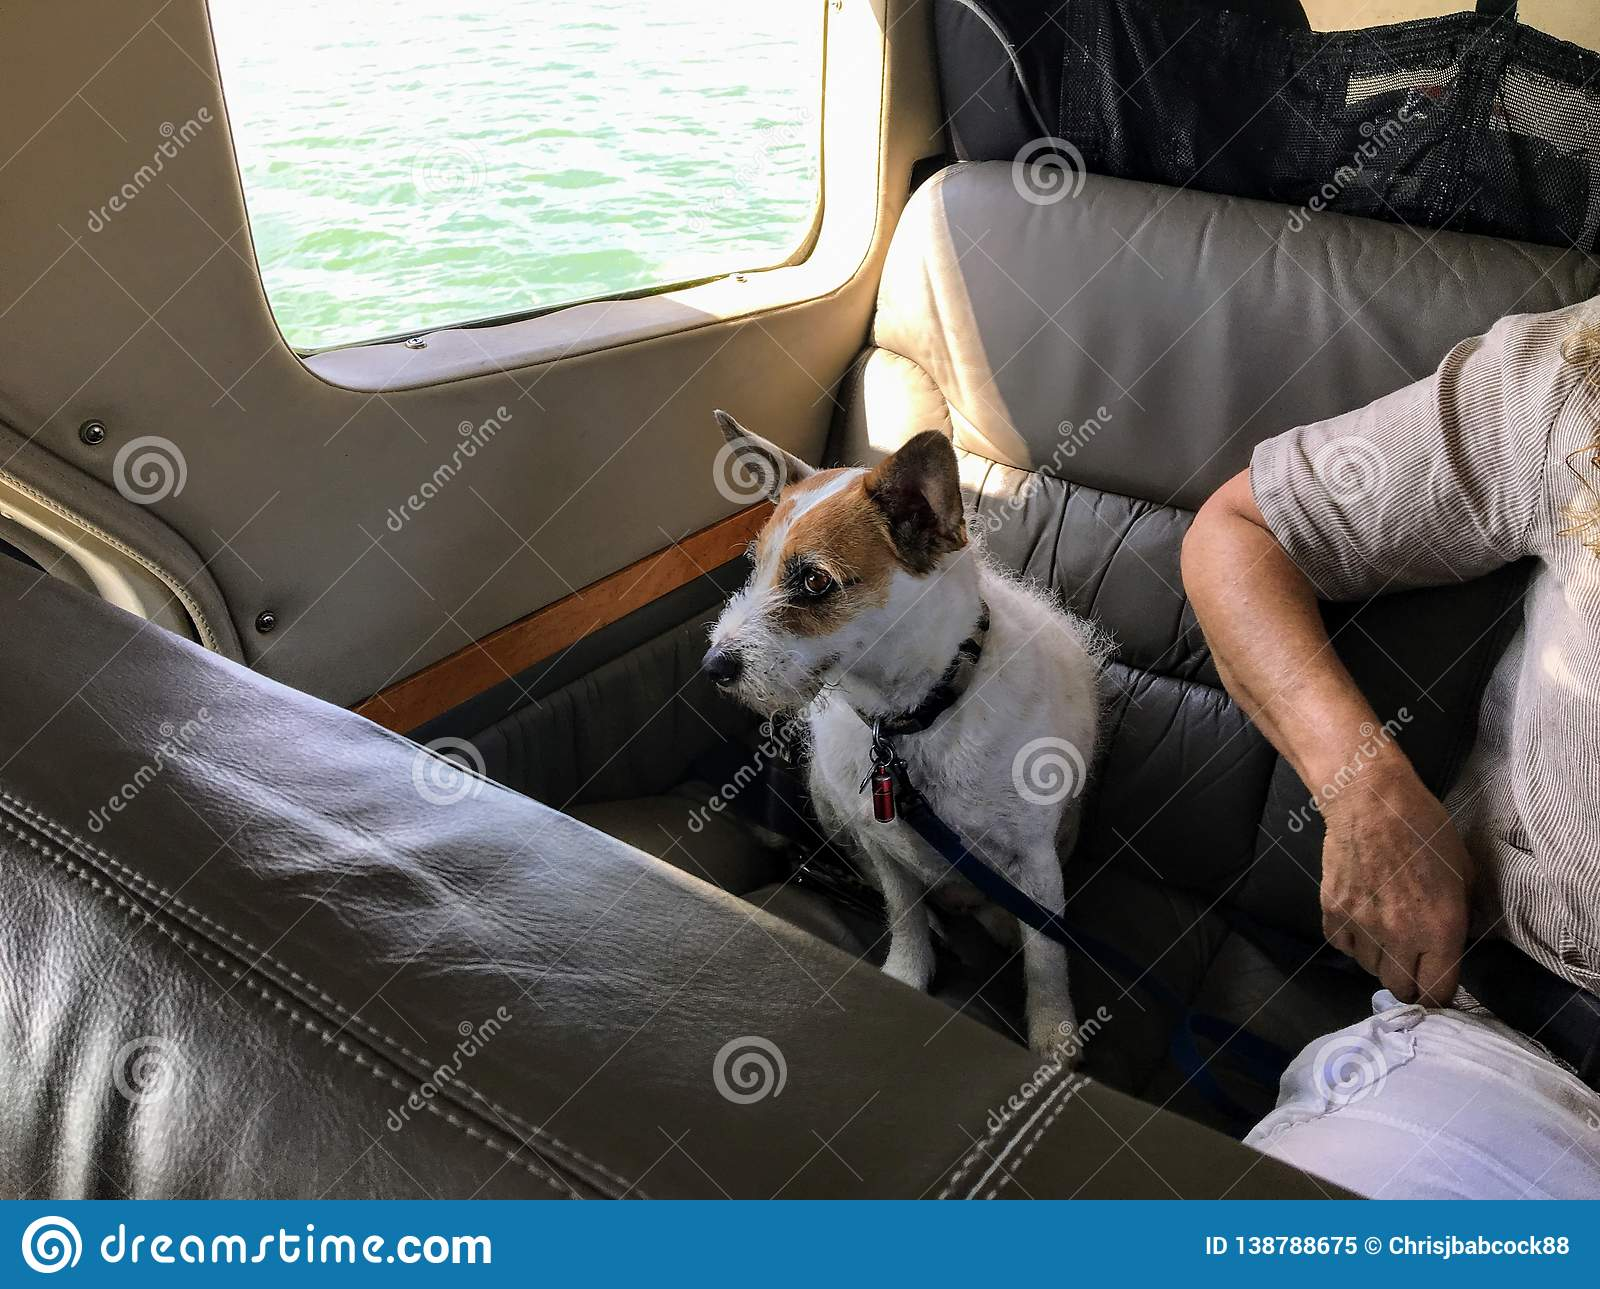 An old terrier dog seated in a water plane beside his owner ready for take off, in Vancouver